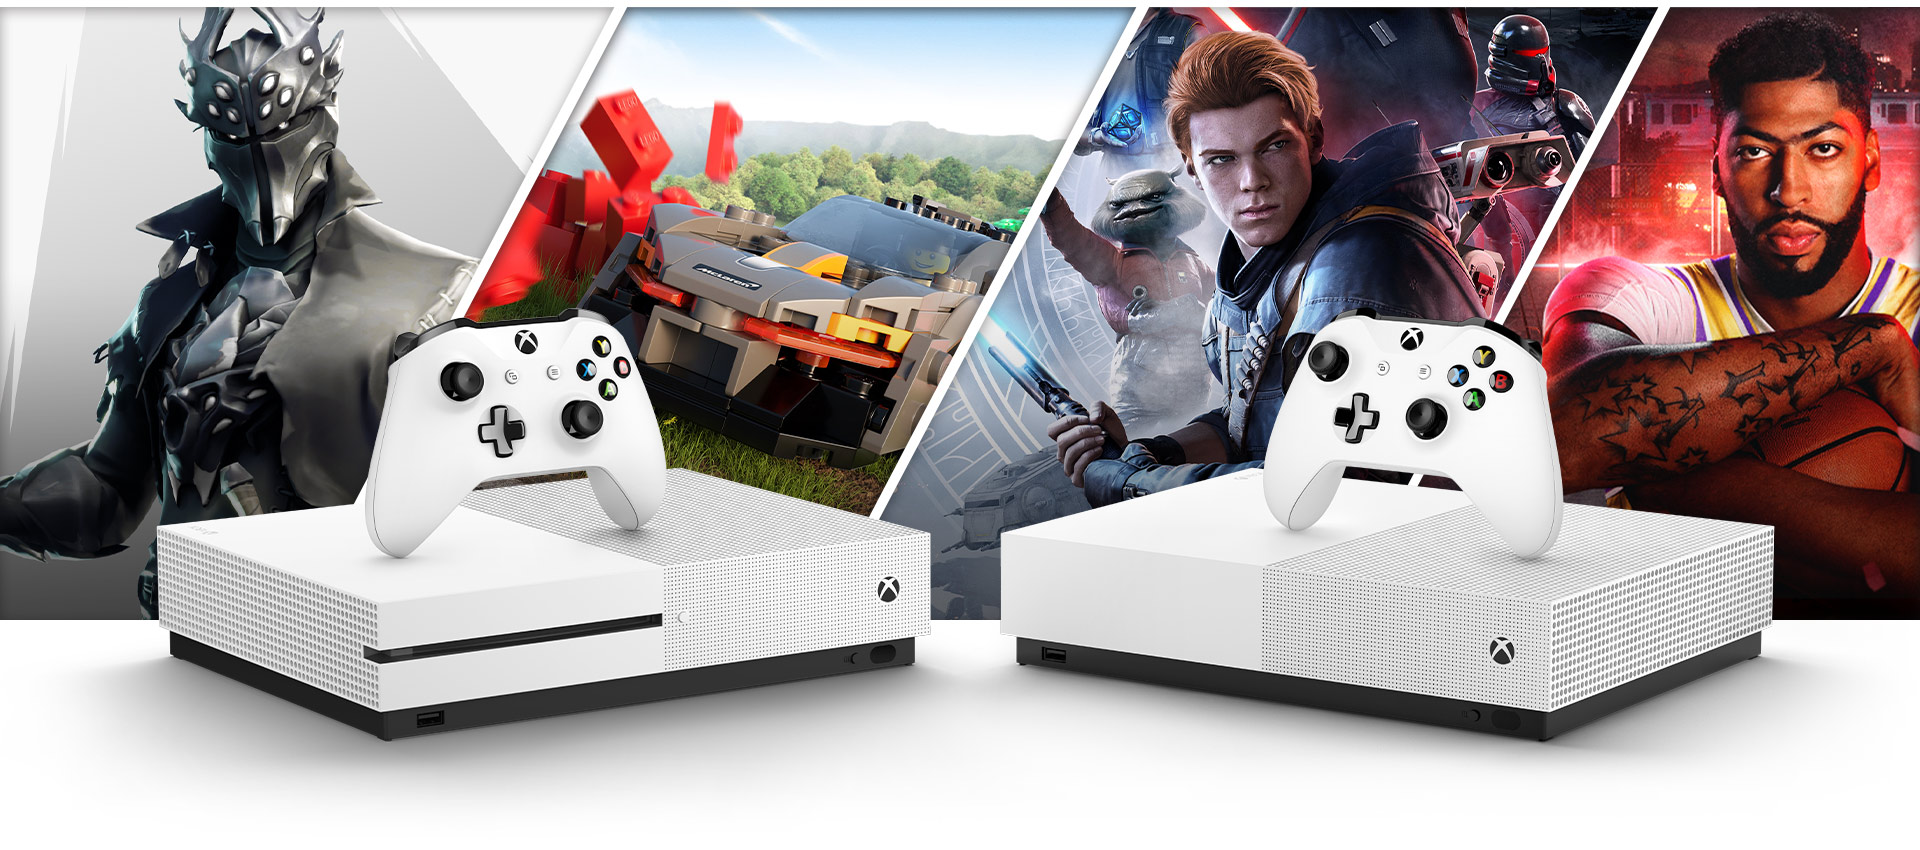 Gráficos de Fortnite, Forza Horizon 4, Star Wars Jedi: Fallen Order y NBA 2K20 detrás de una consola Xbox One S y Xbox One S All-Digital Edition